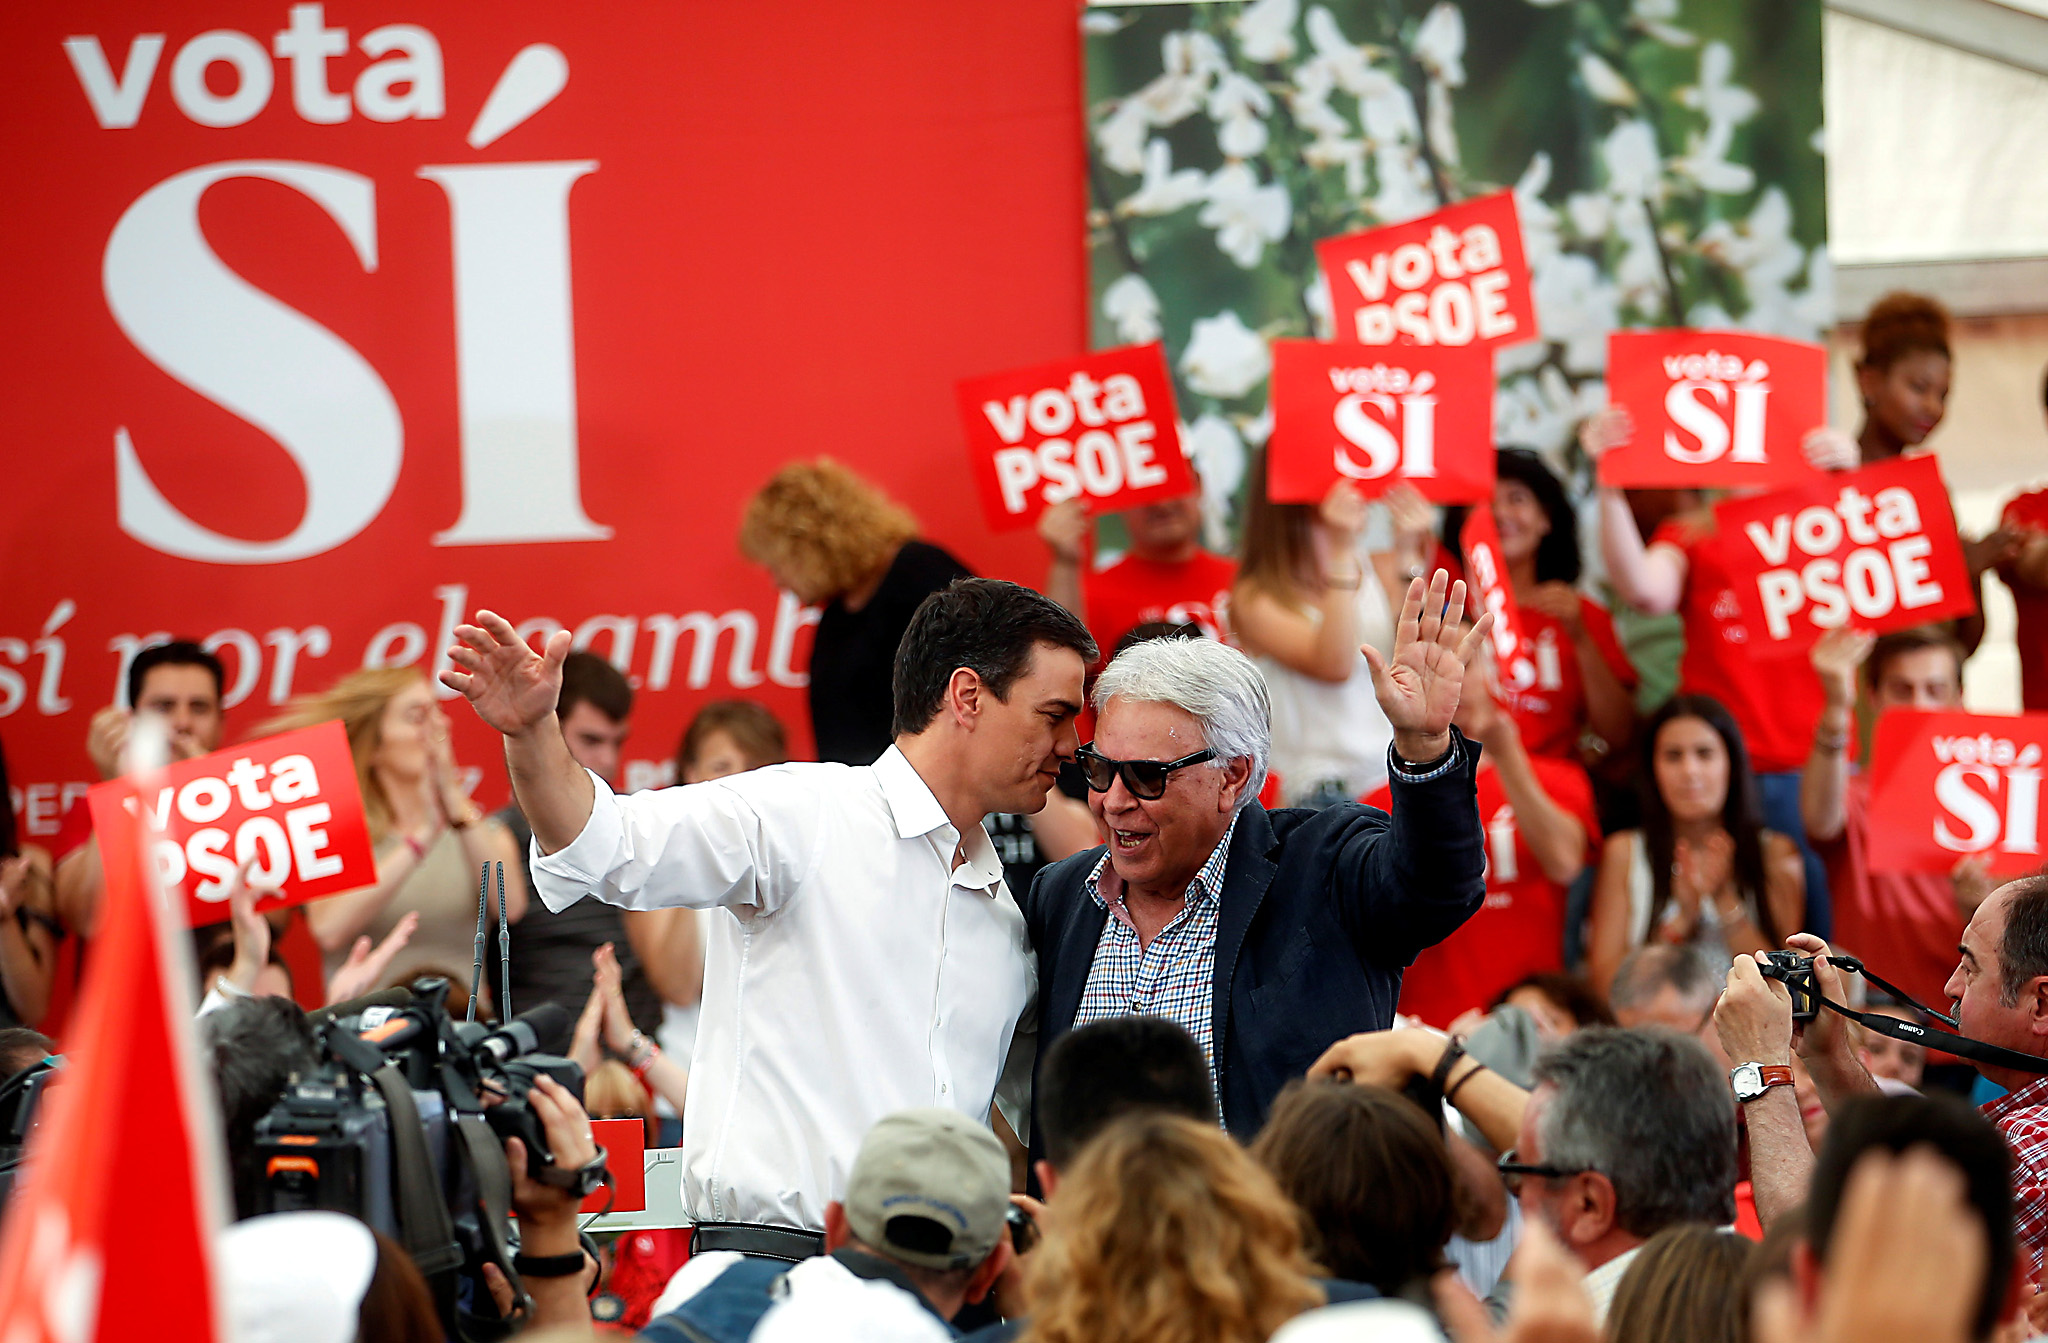 Spanish Socialist Workers' Party (PSOE) leader Pedro Sanchez (L) stands with former Prime Minister Felipe Gonzalez as they wave to supporters in Madrid, Spain June 24, 2016. REUTERS/Javier Barbancho